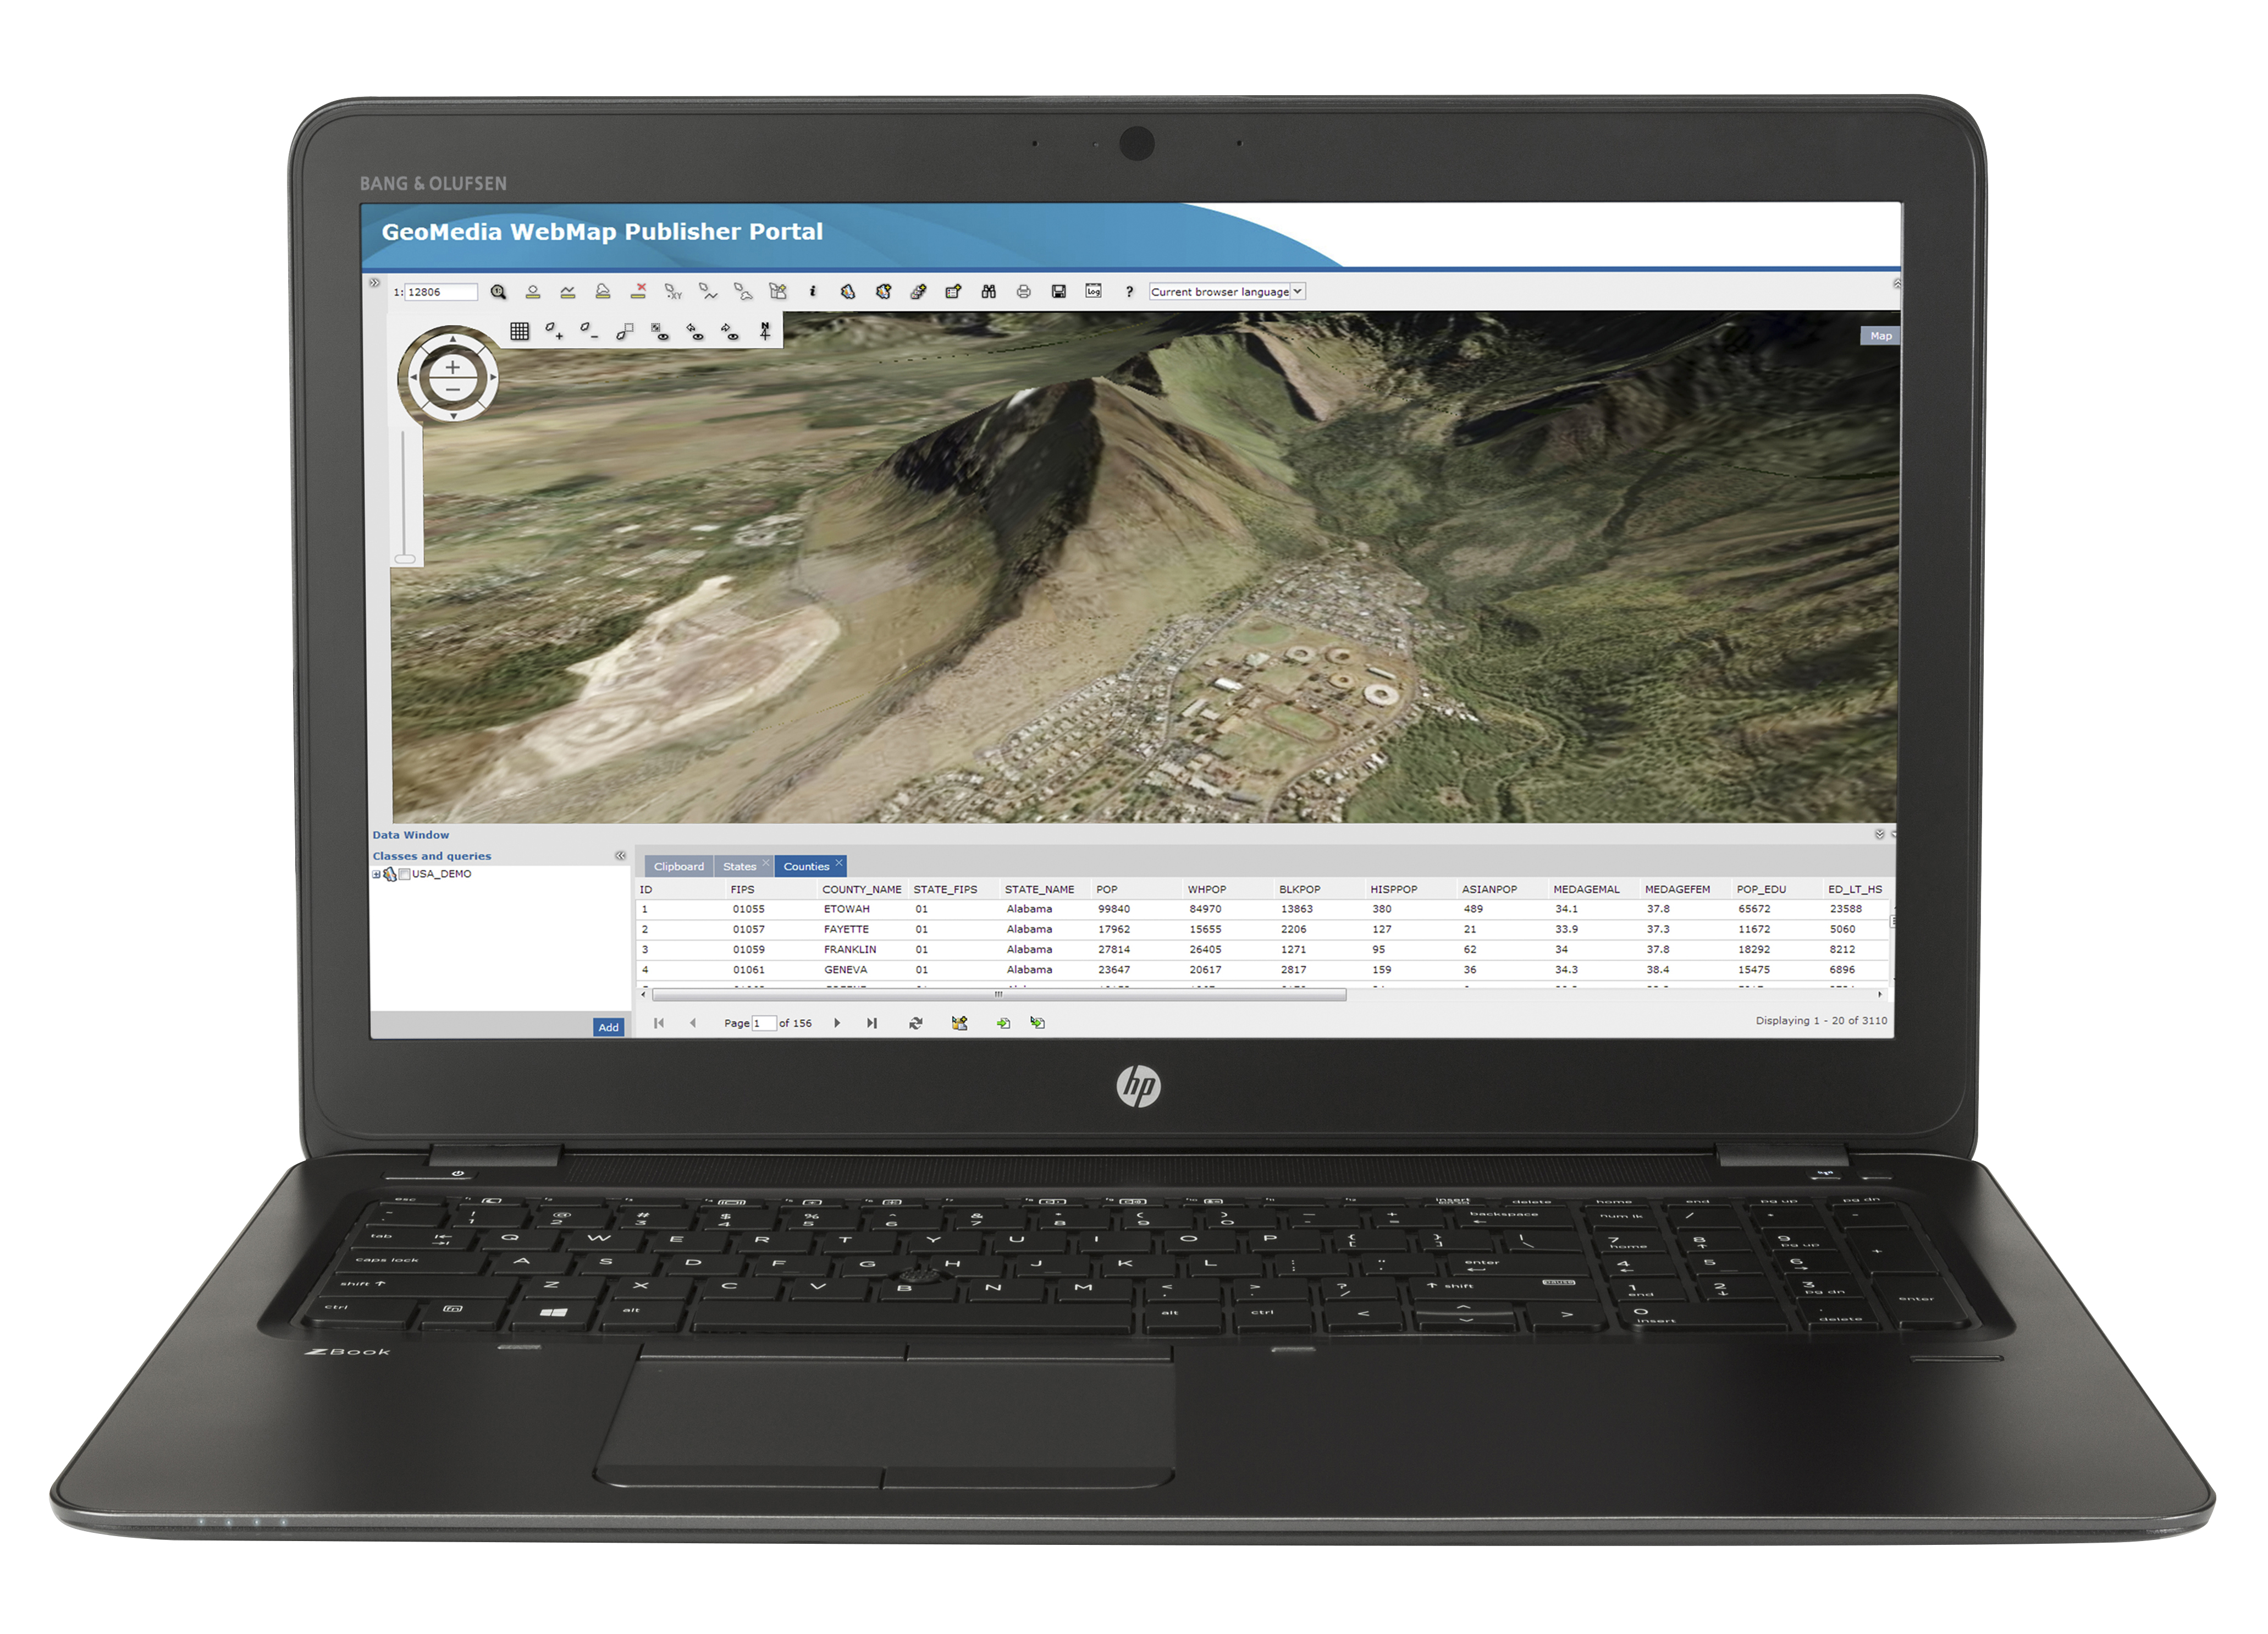 HP ZBook 15u G3 Mobile Workstation 0889899049976 T7W12ET 10_2M3V969